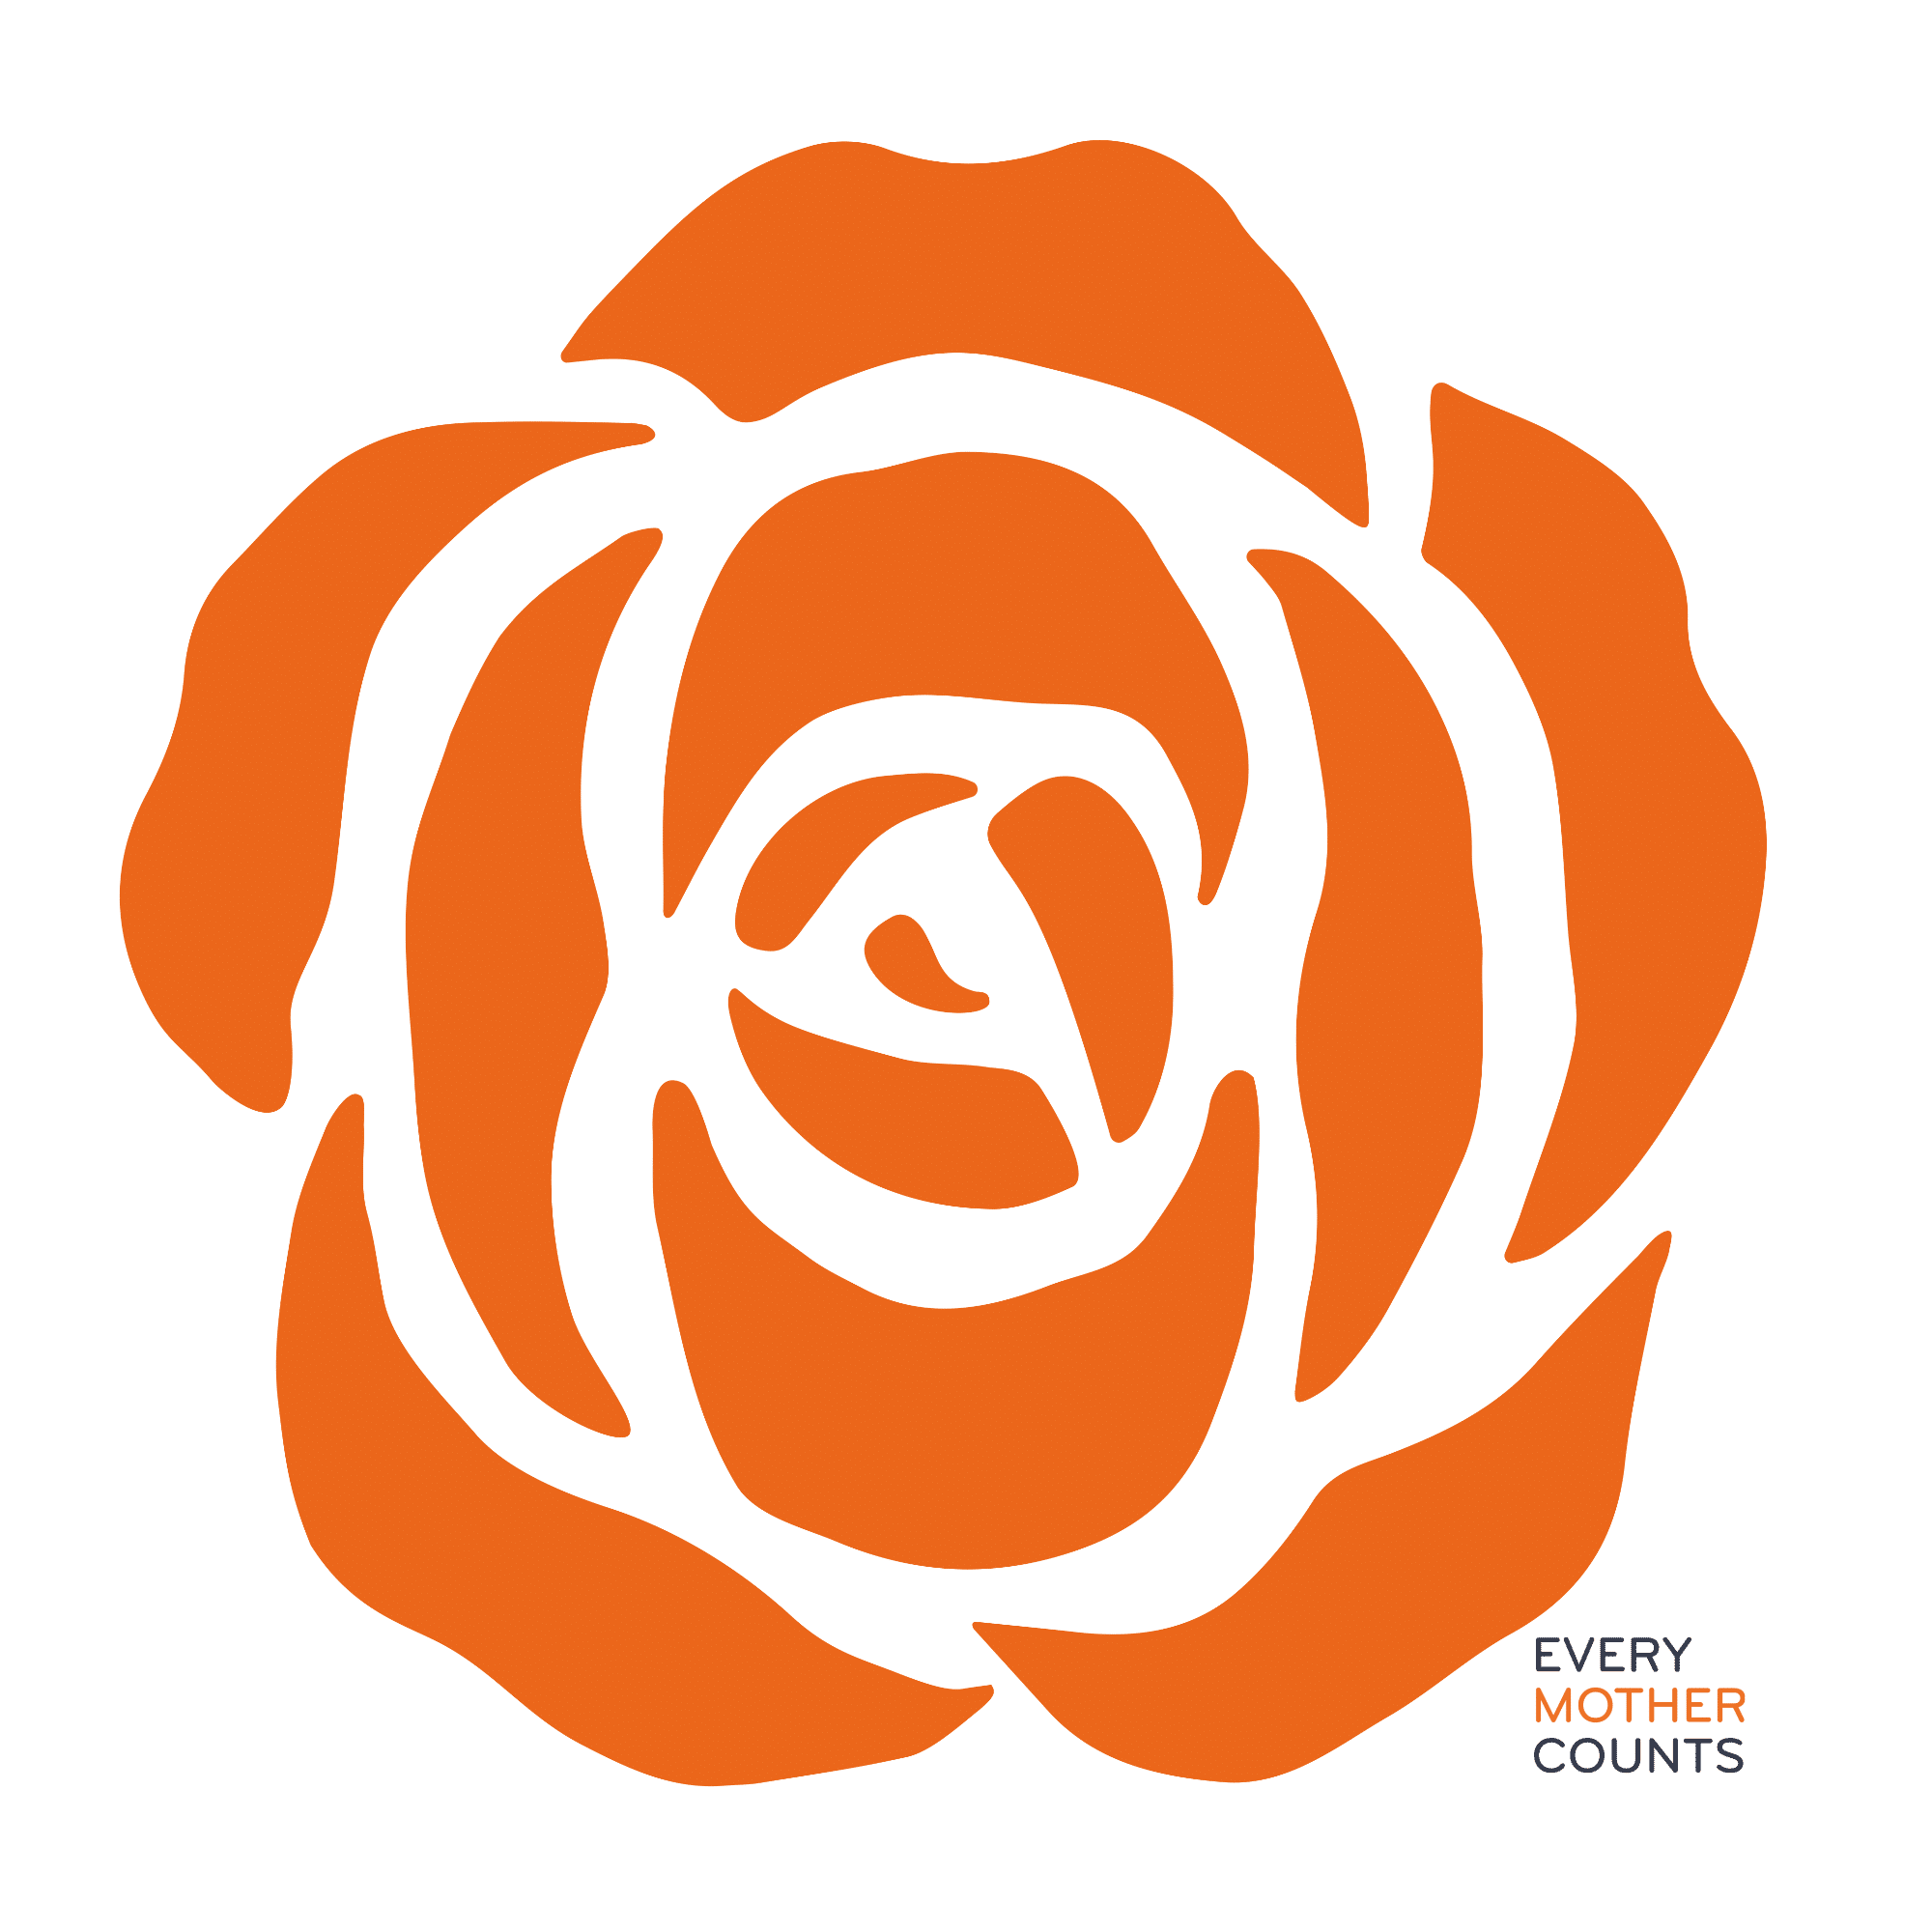 Every Mother Counts Orange Rose Logo Gooseberry Pink